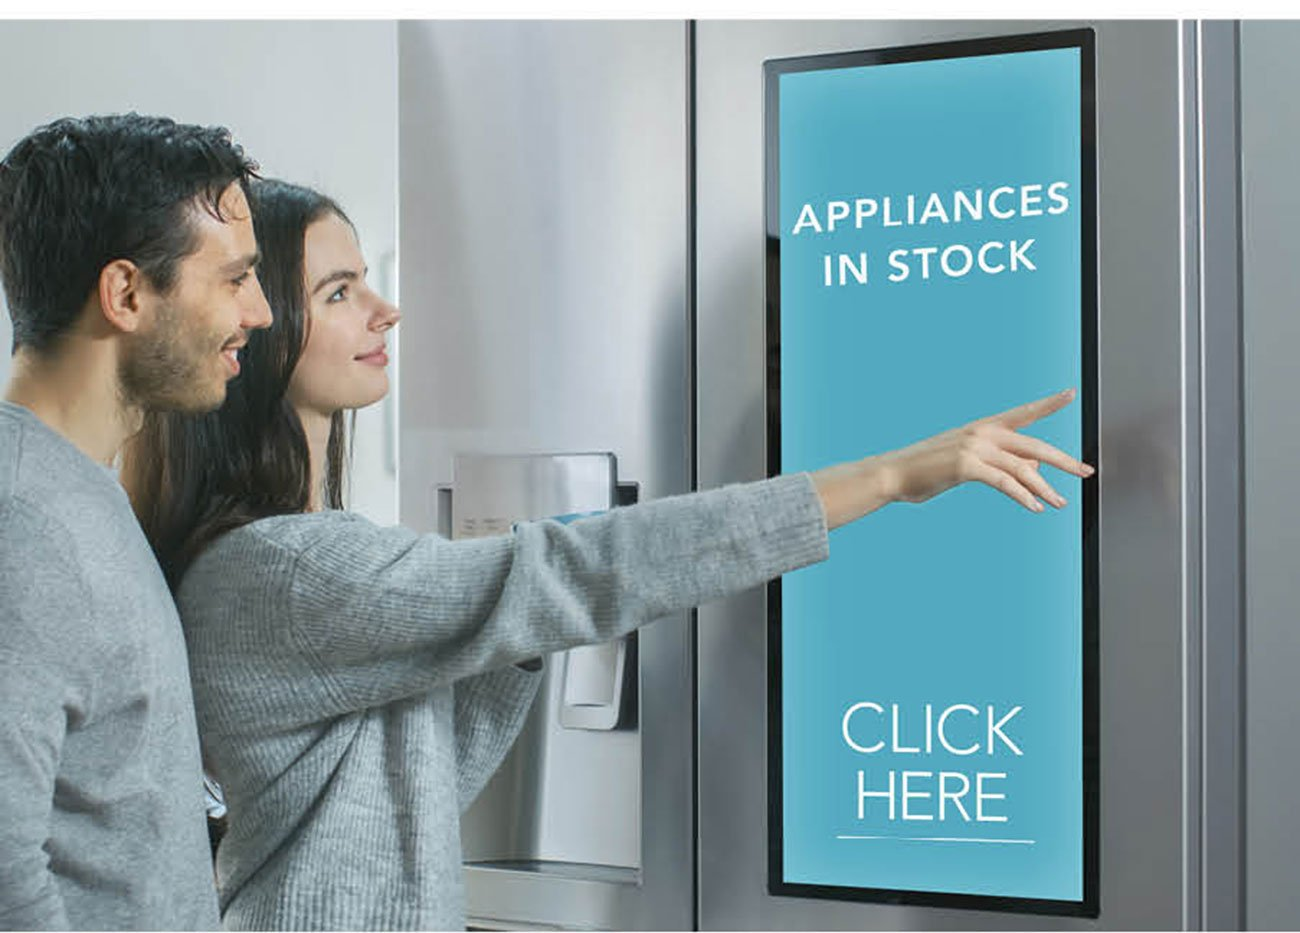 Appliances-in-stock